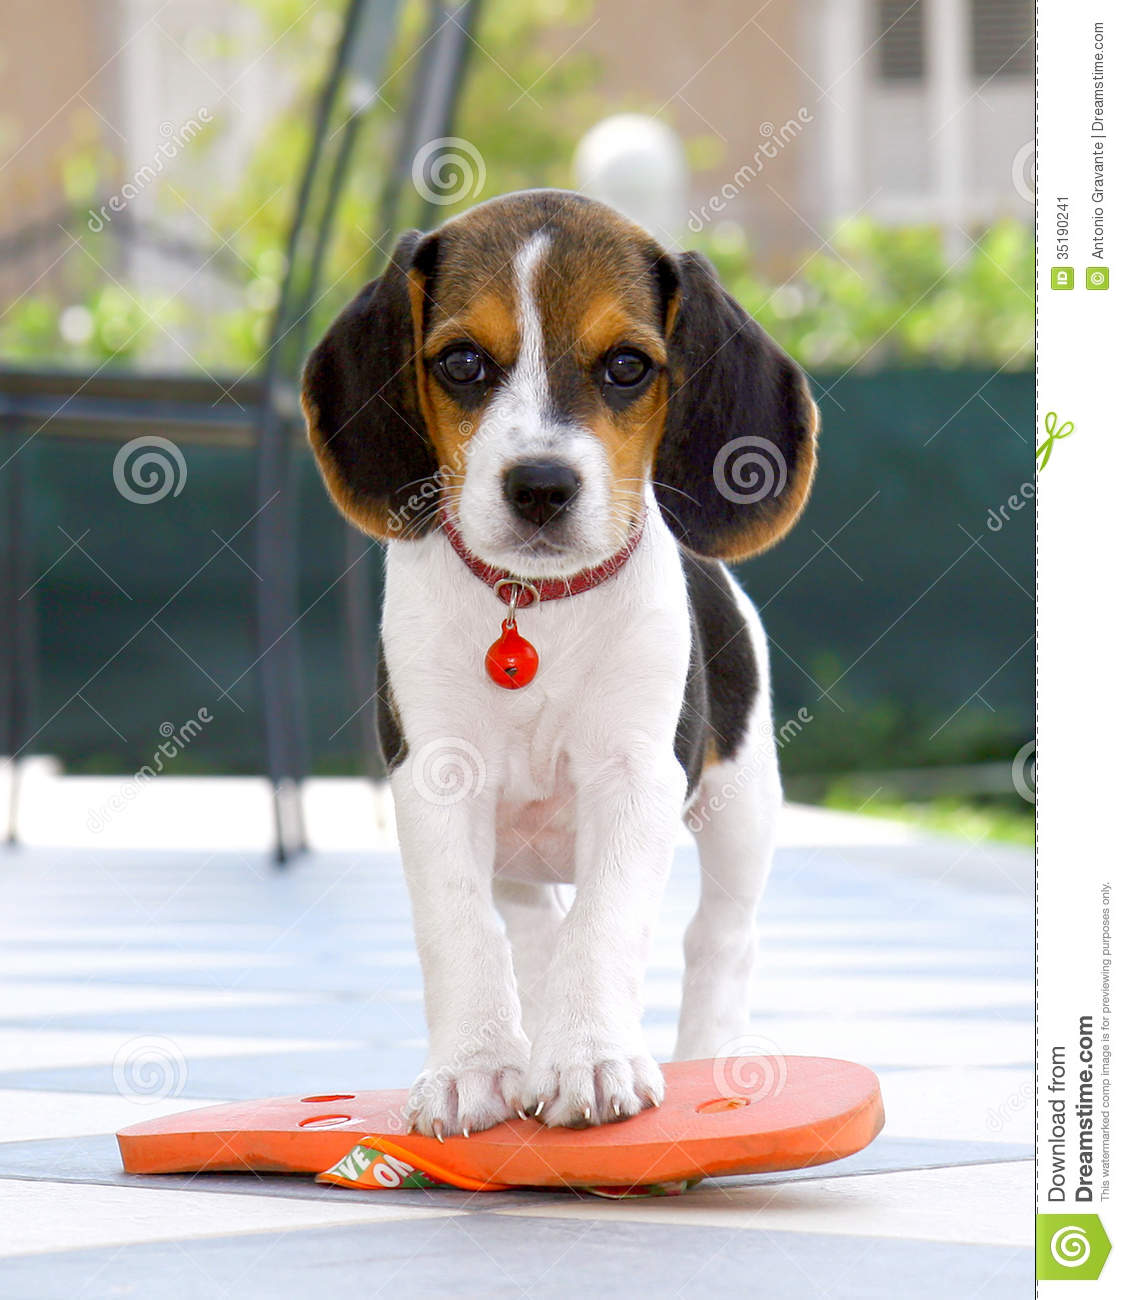 Cute Beagle puppy with flip flops on checkered flooring